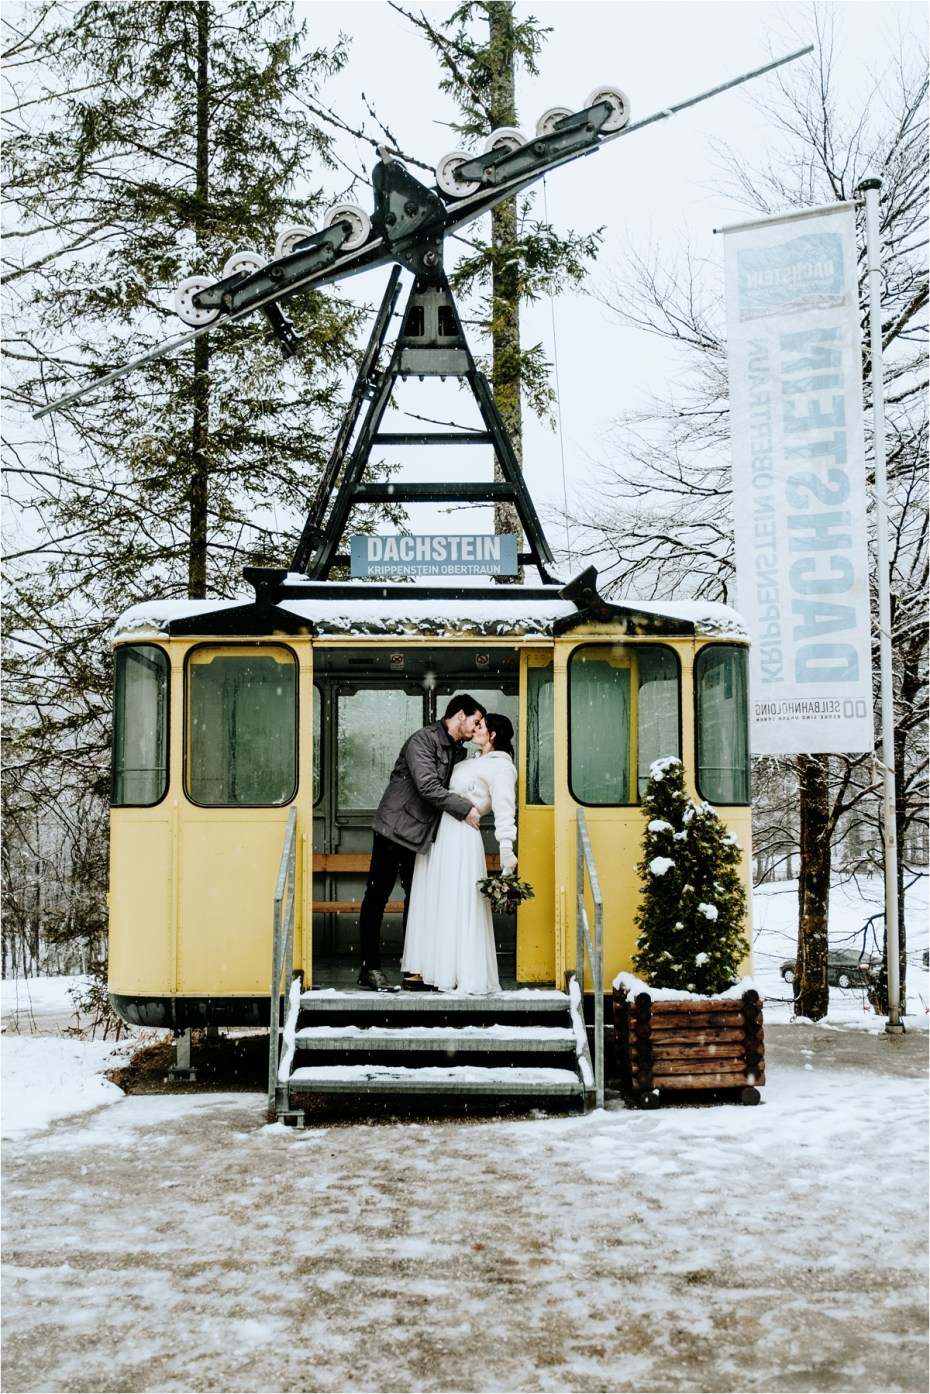 Bride and groom kiss in a vintage cable car in Hallstatt Austria after their elopement wedding. Photos by Wild Connections Photography